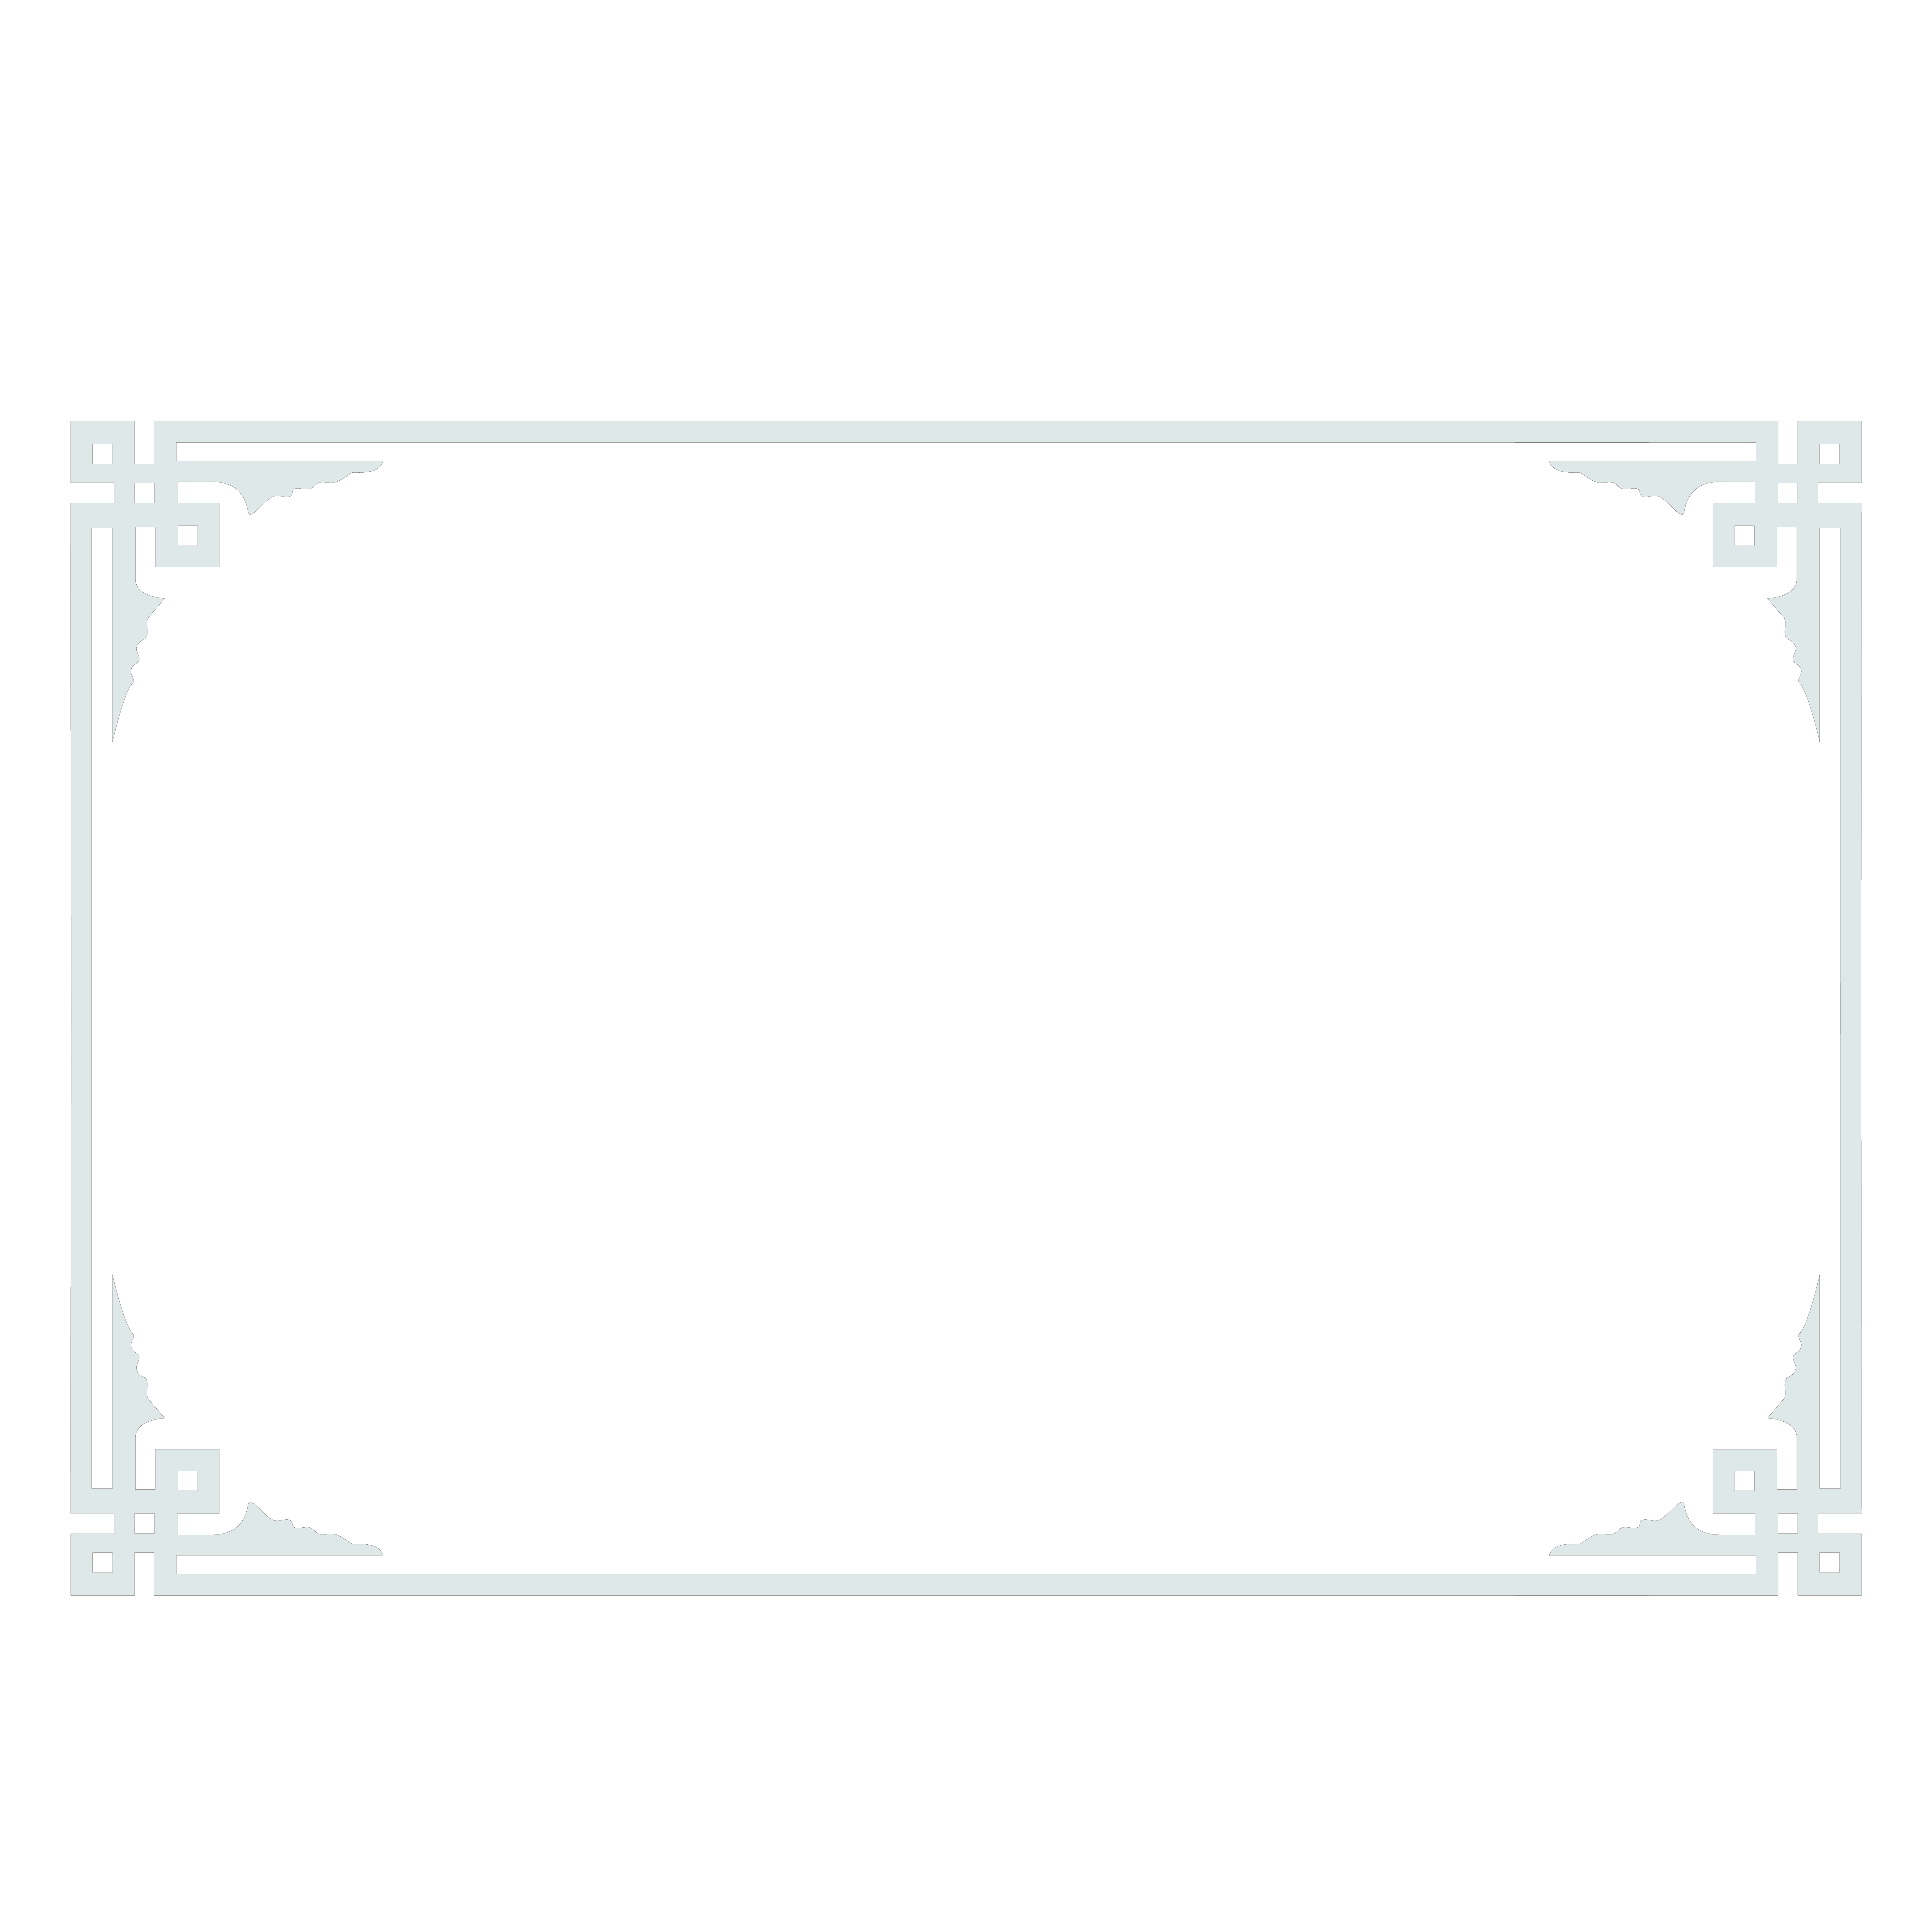 White png border. Black pattern certificate of